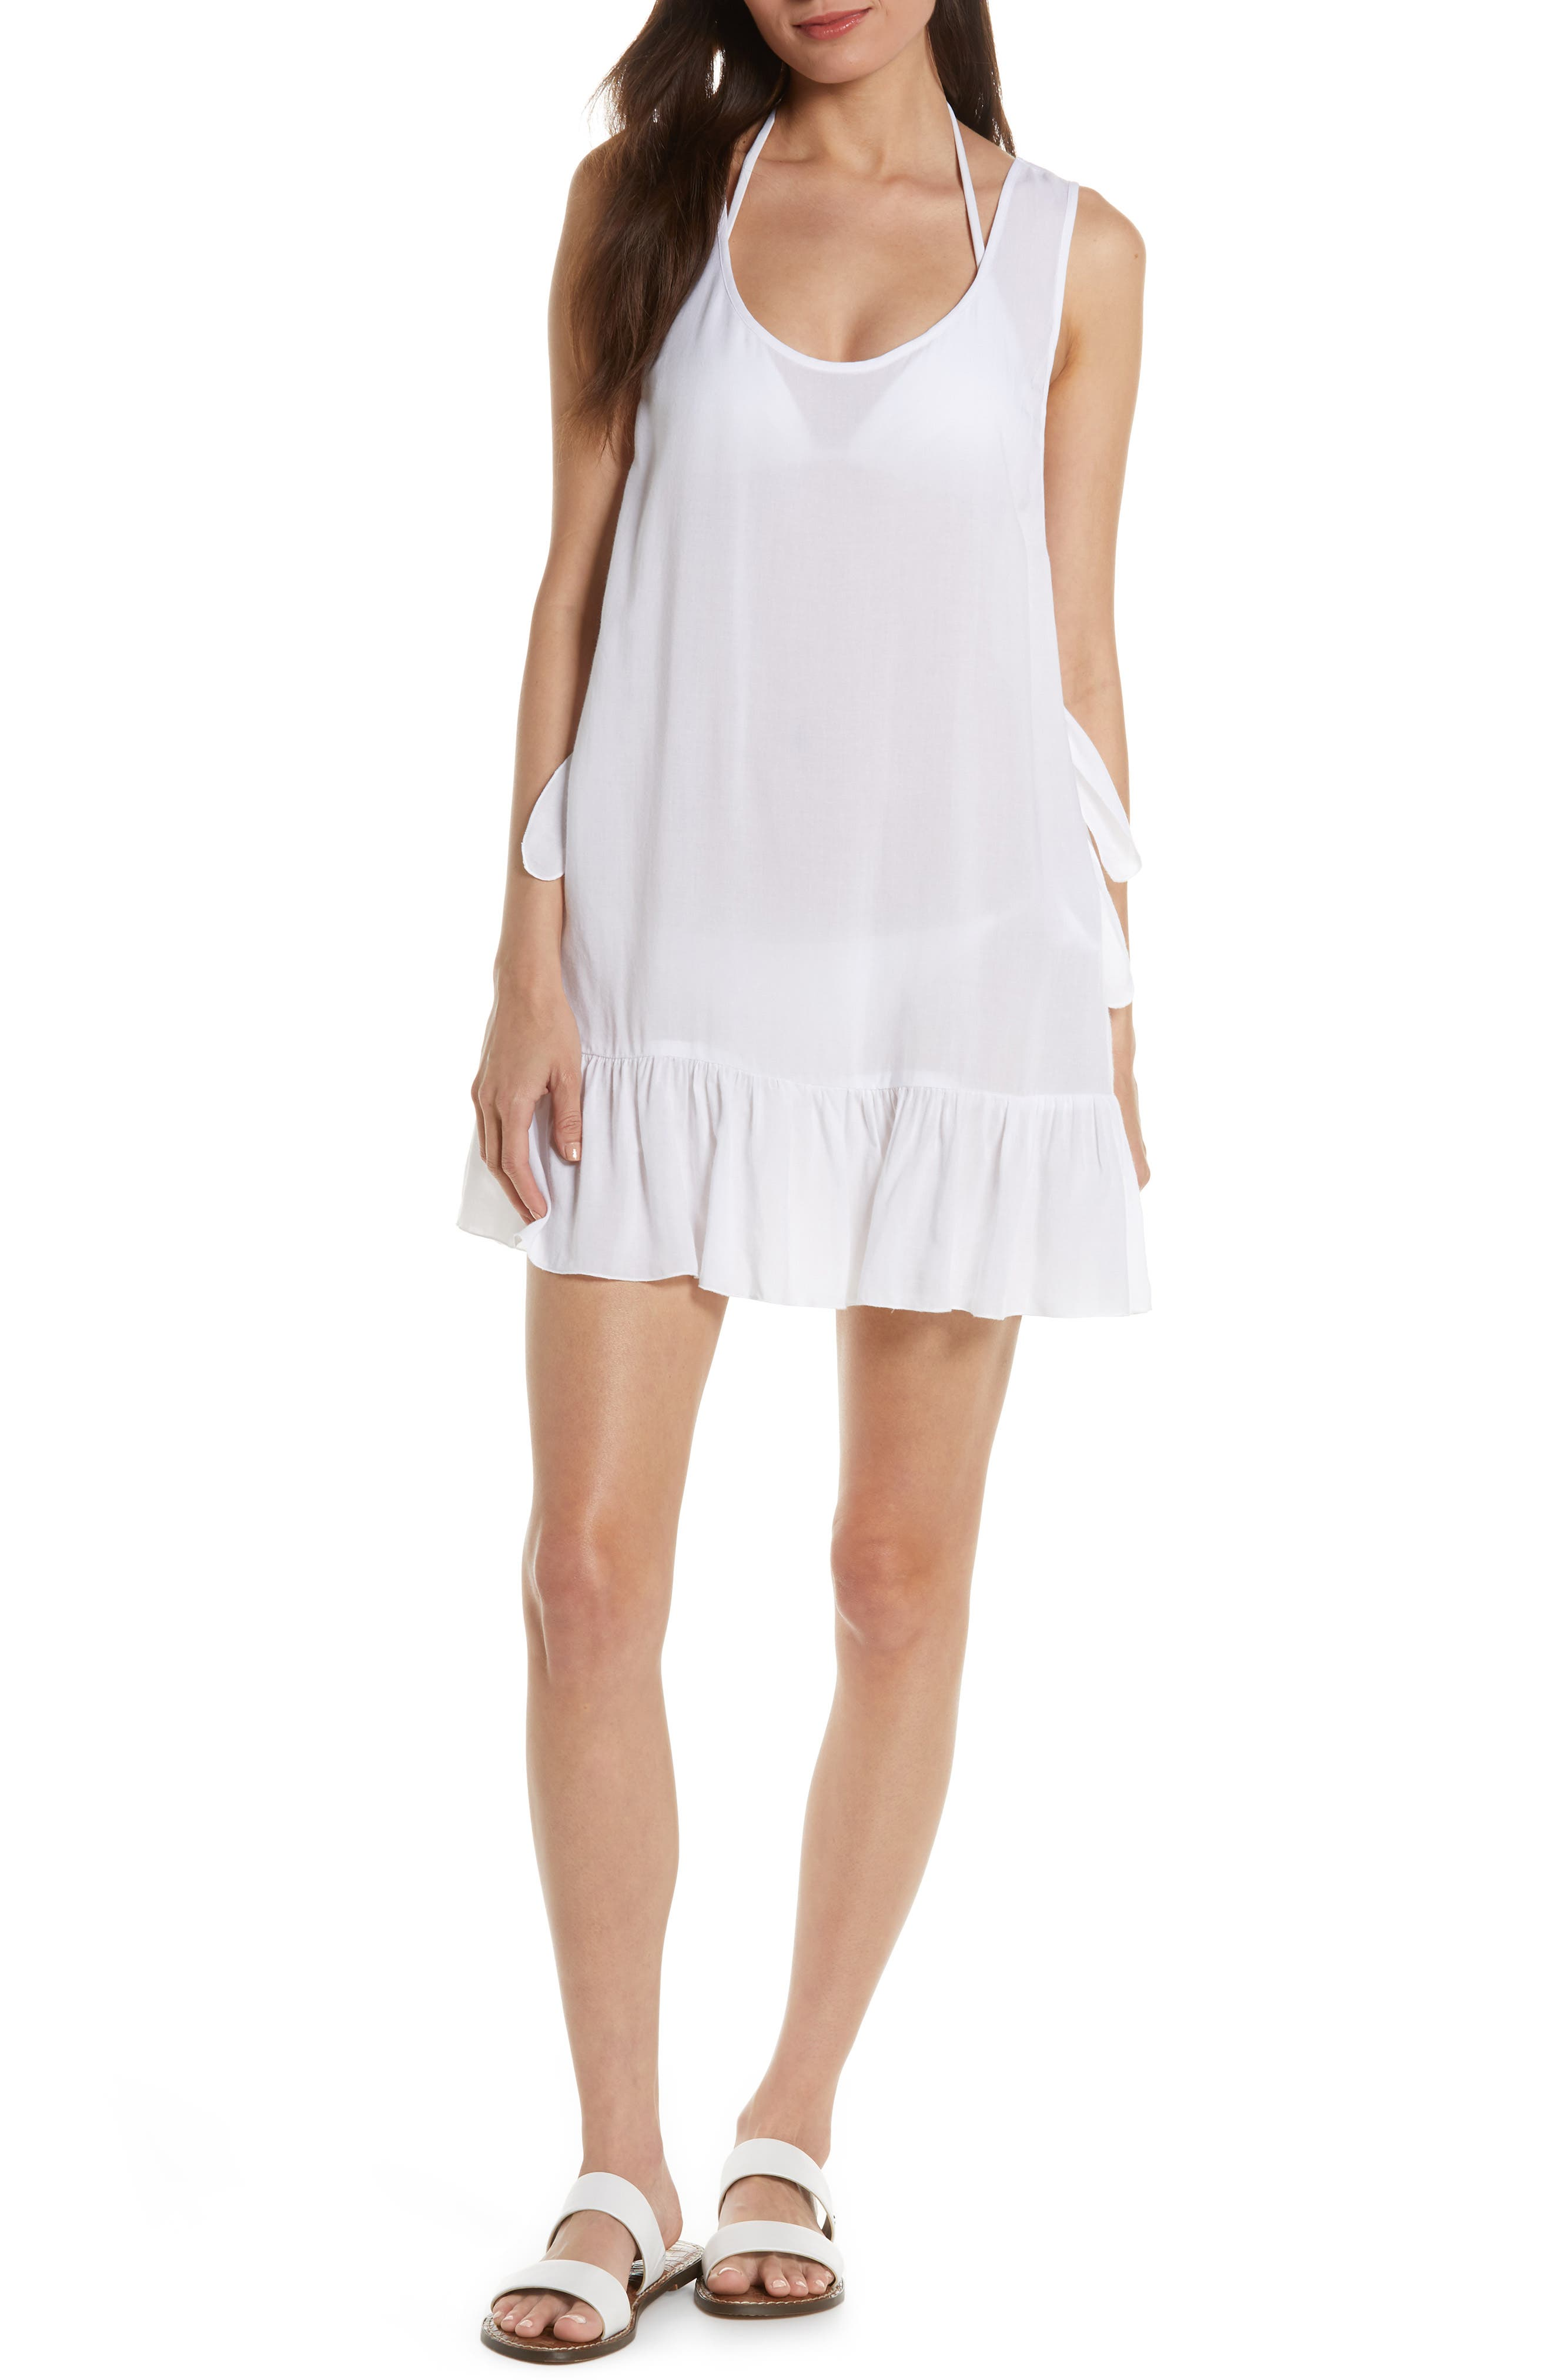 Chelsea28 Tayla Side Tie Cover-Up Minidress, White